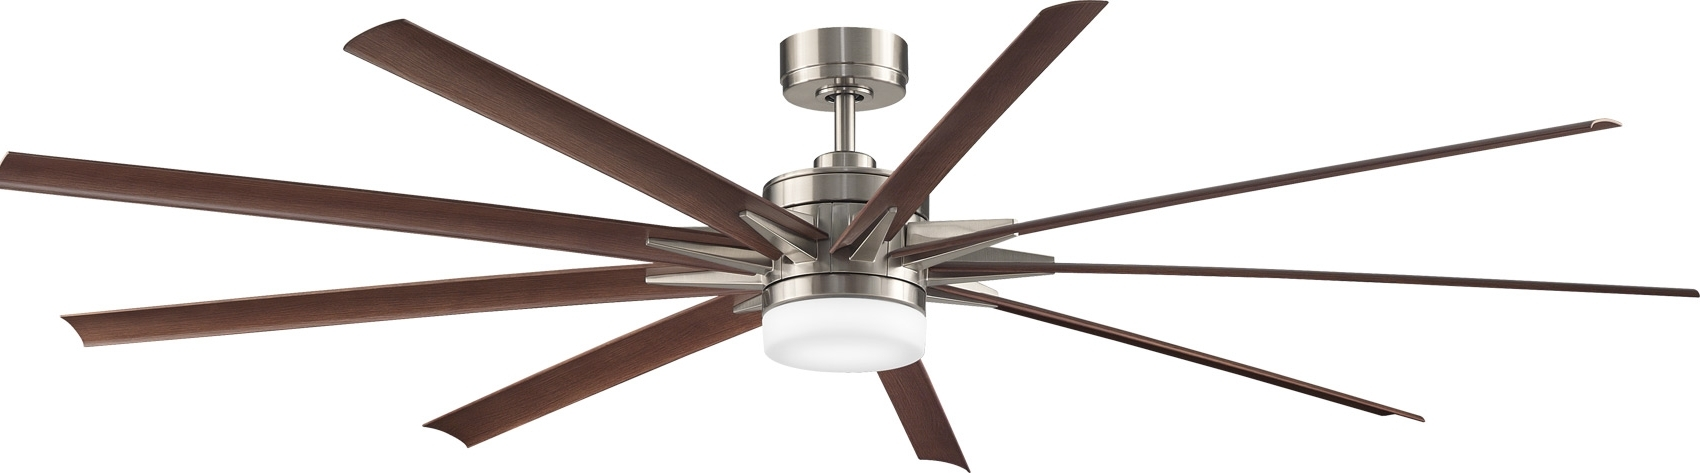 "Odyn 84"" Large Ceiling Fanfanimation Pertaining To Latest High Volume Outdoor Ceiling Fans (View 13 of 20)"